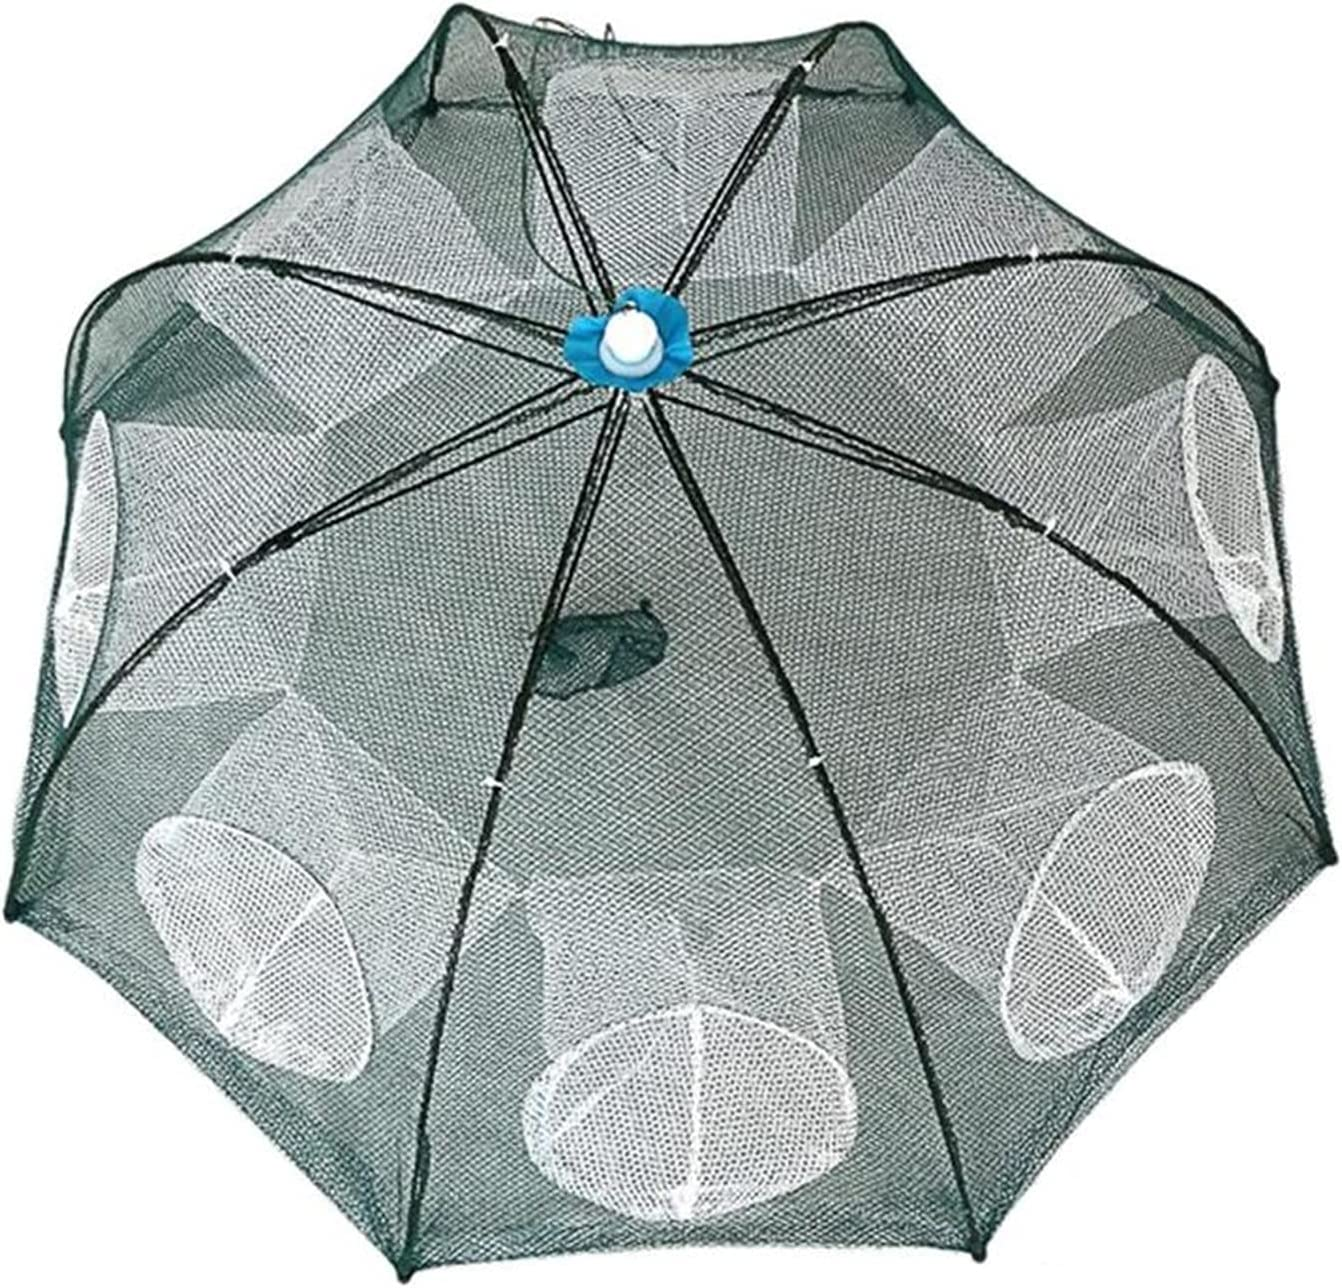 FRSDMY Portable Automatic Folding Umbrella Net Shr Outlet sale feature Special Campaign Fishing Type